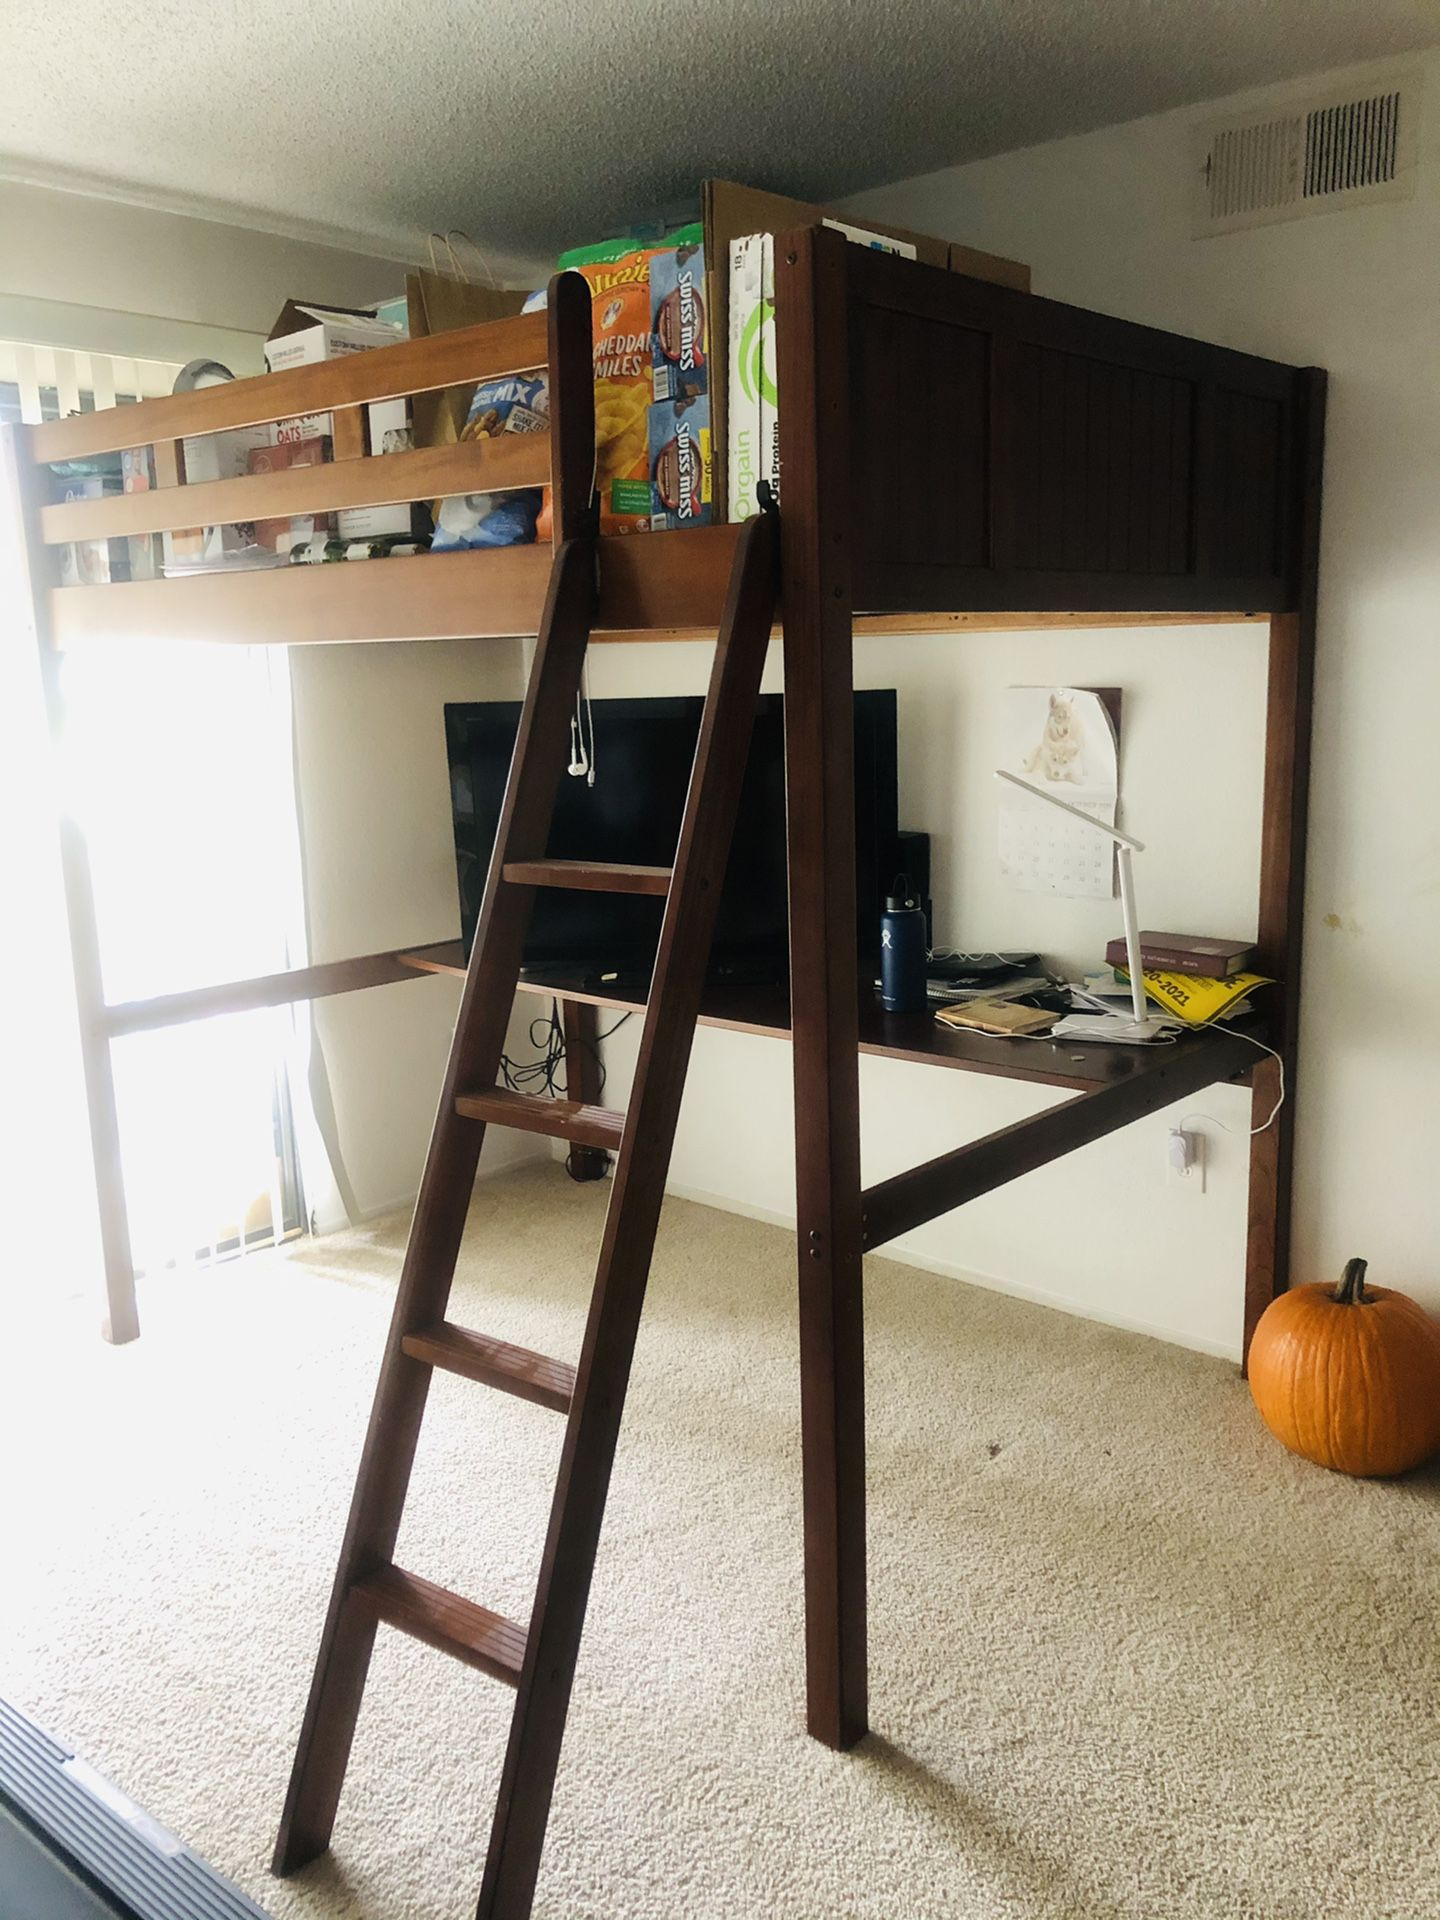 Bunkbed with study table